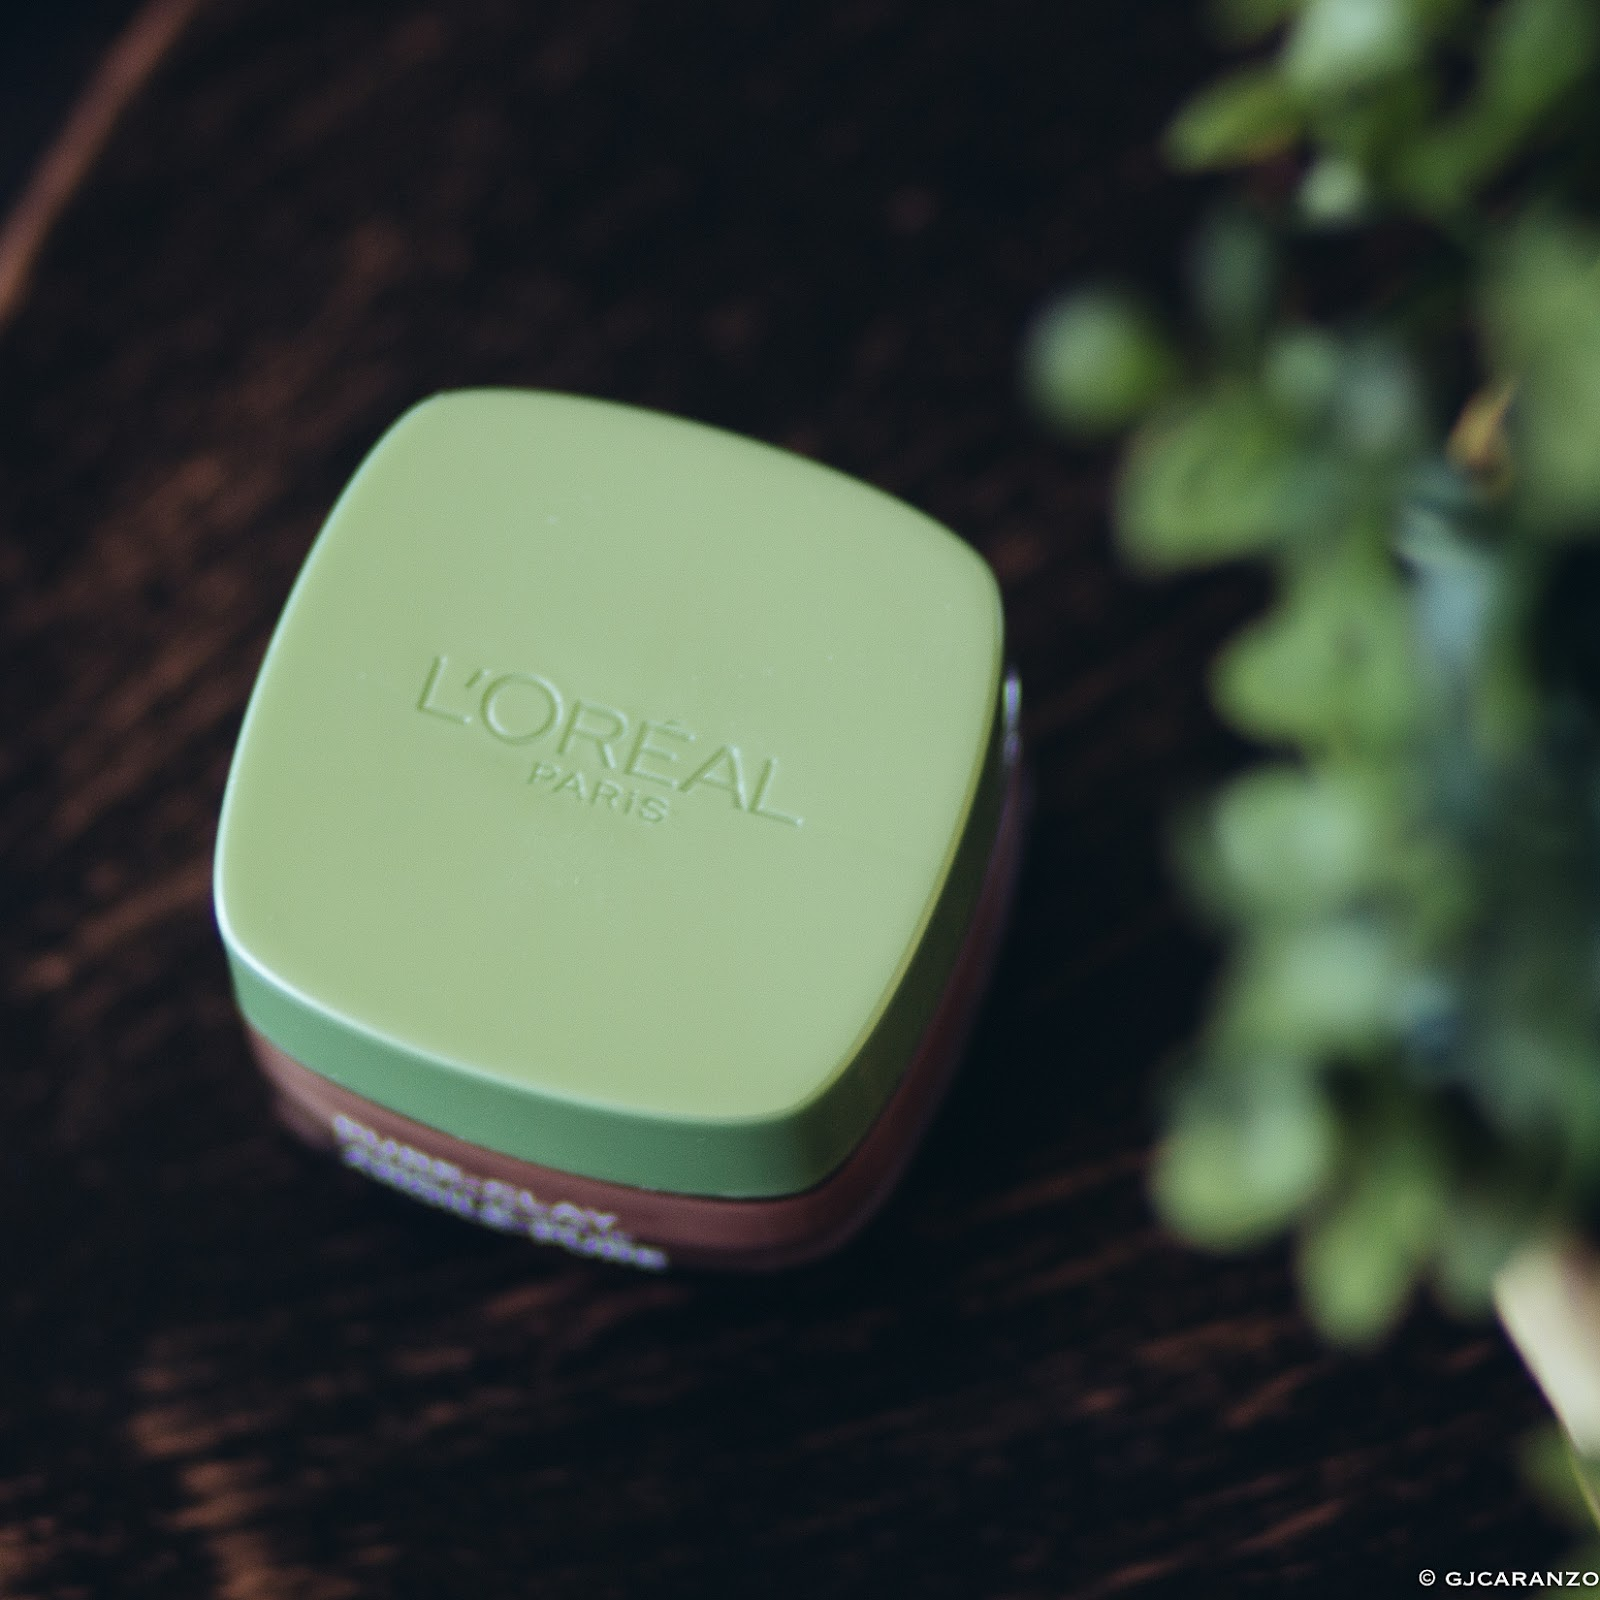 Loreal Pure-Clay Exfoliate & Refining Face Mask Product Review